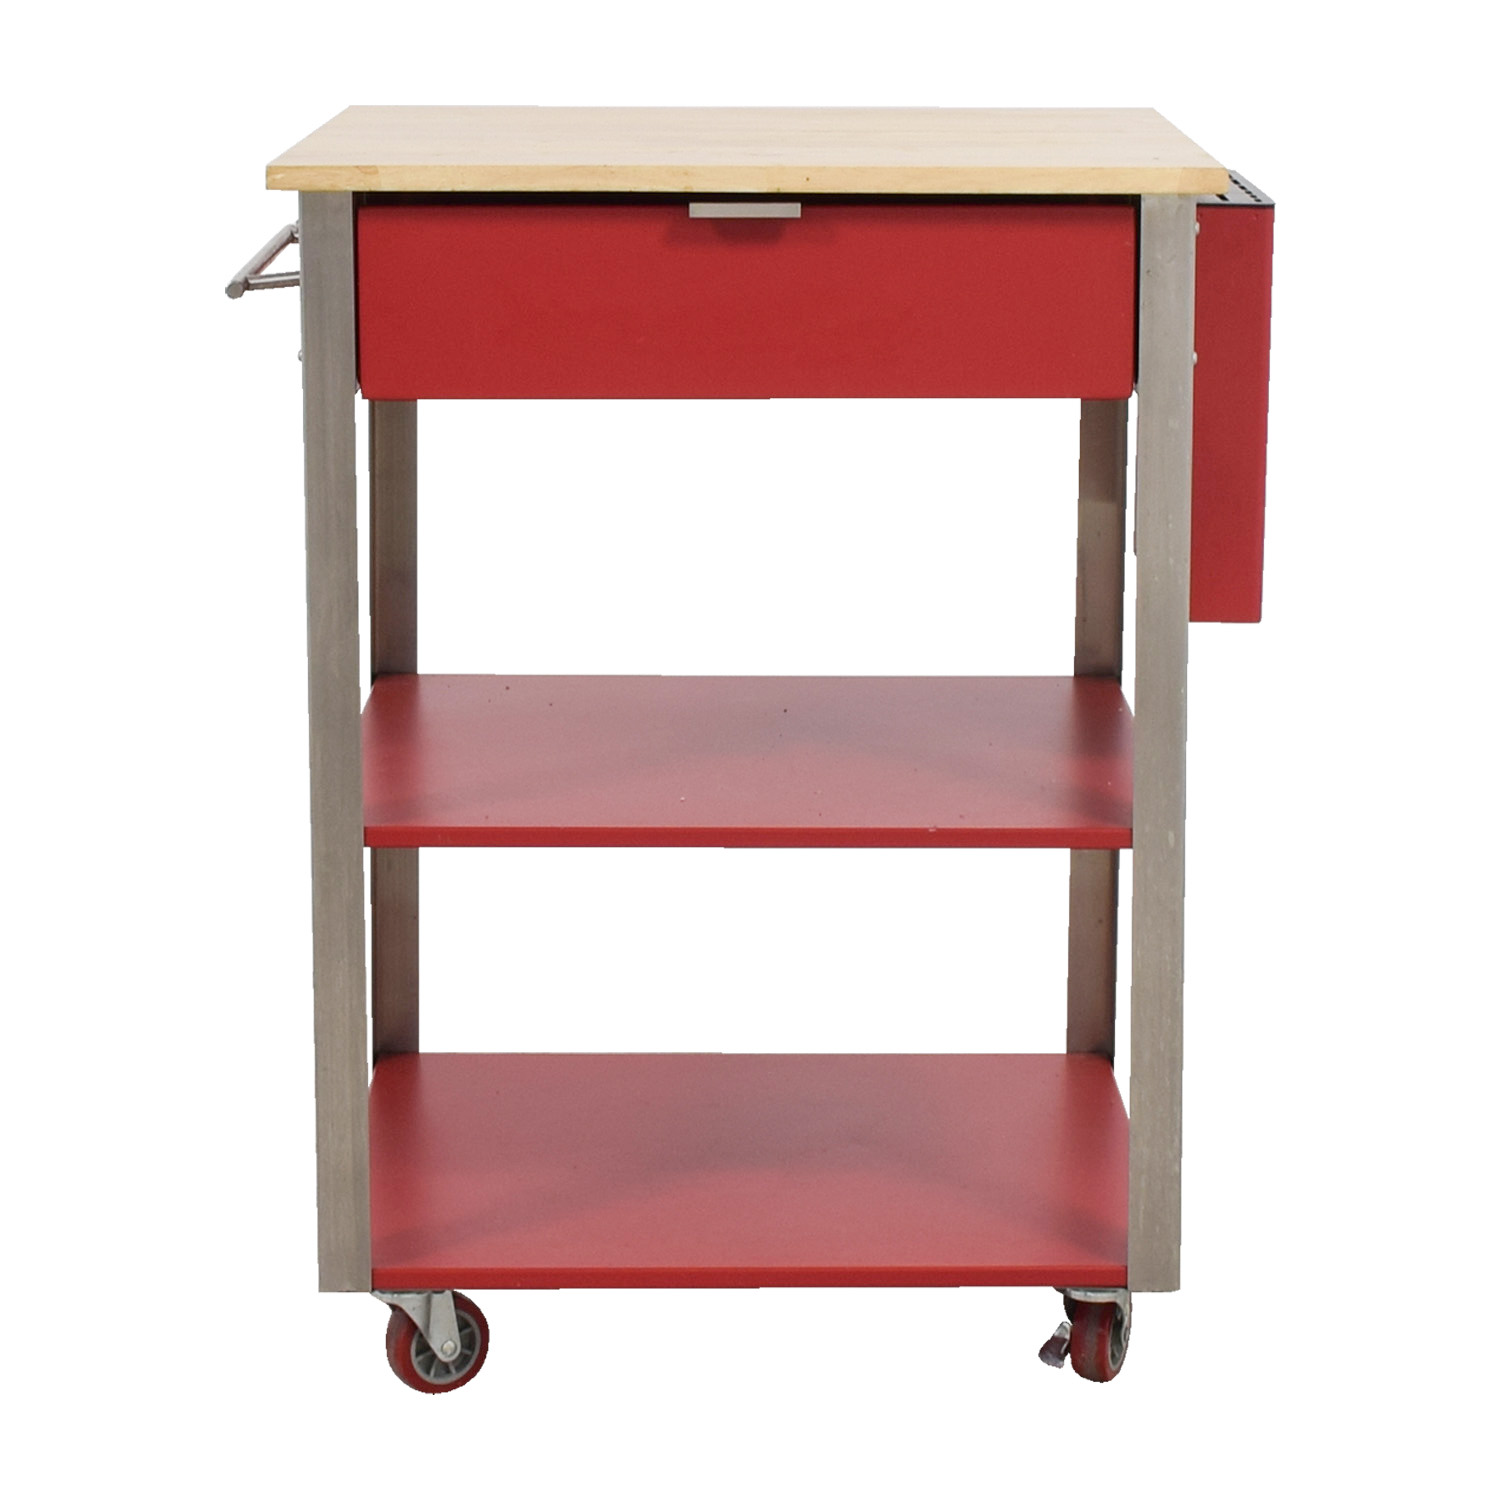 Crossley Crossley Red Metal and Wood Kitchen Island second hand